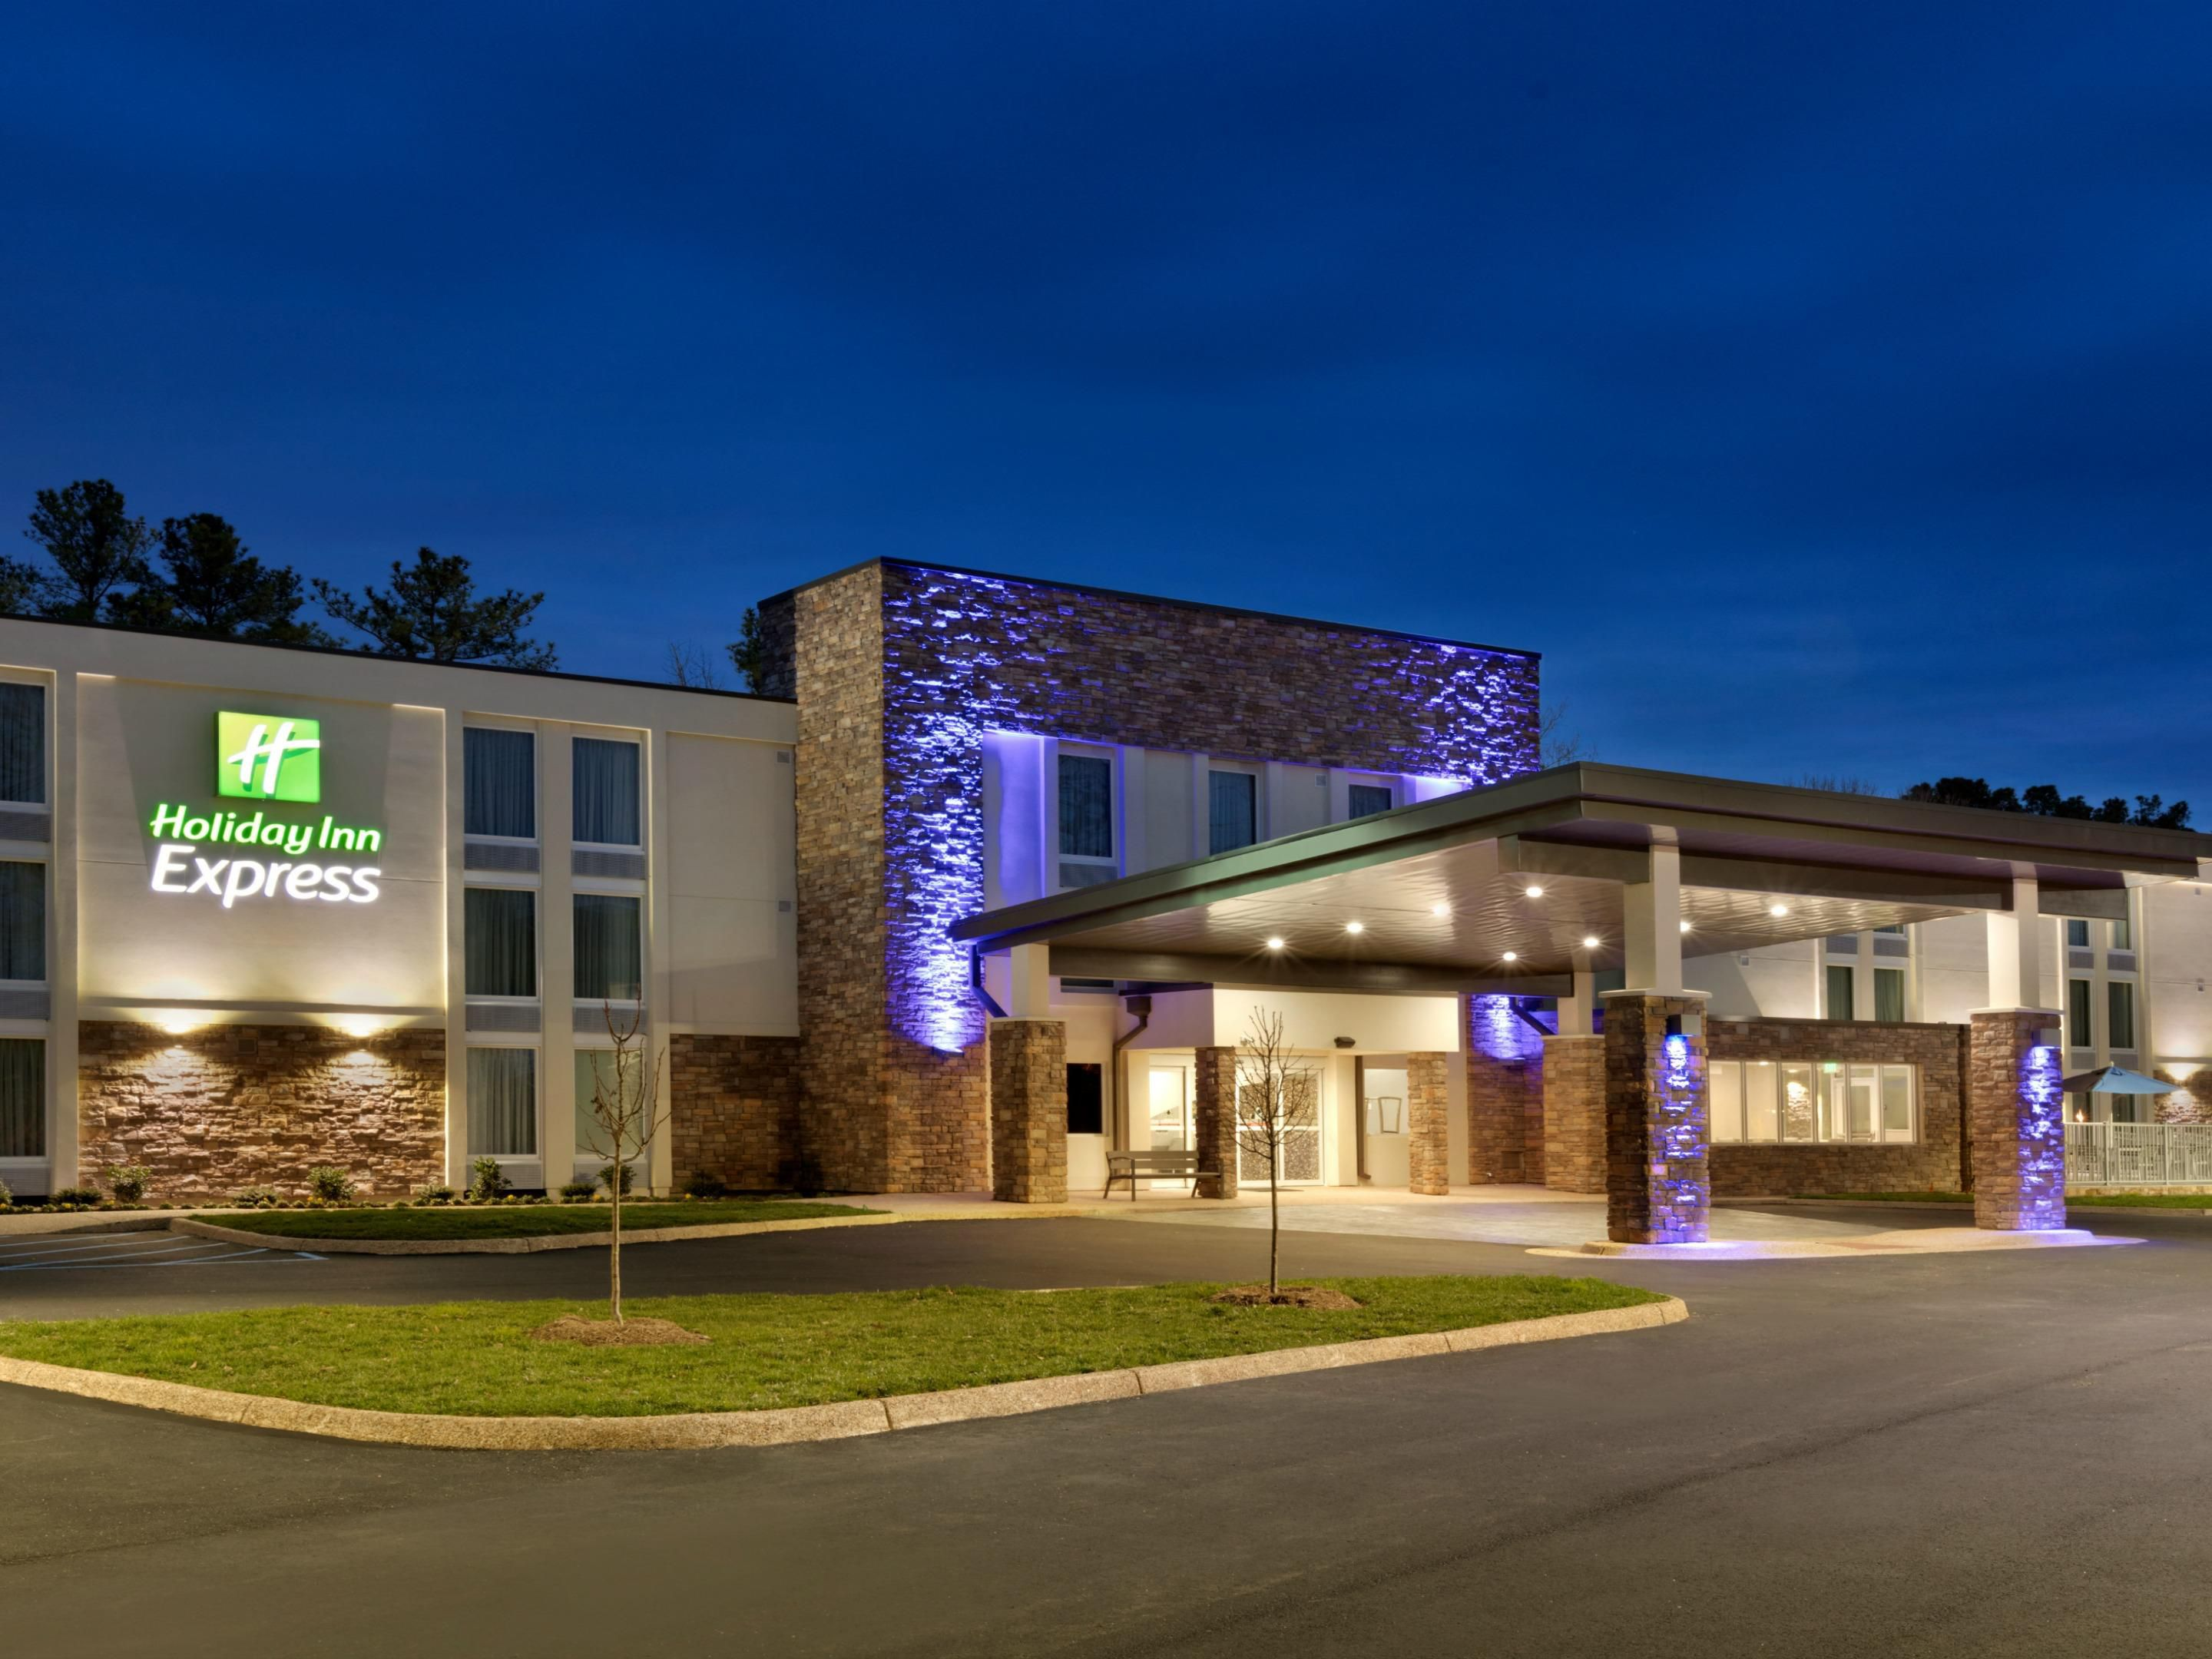 Attractive Holiday Inn Express Williamsbrg Busch Gardens Area In Williamsburg, Virginia Good Looking